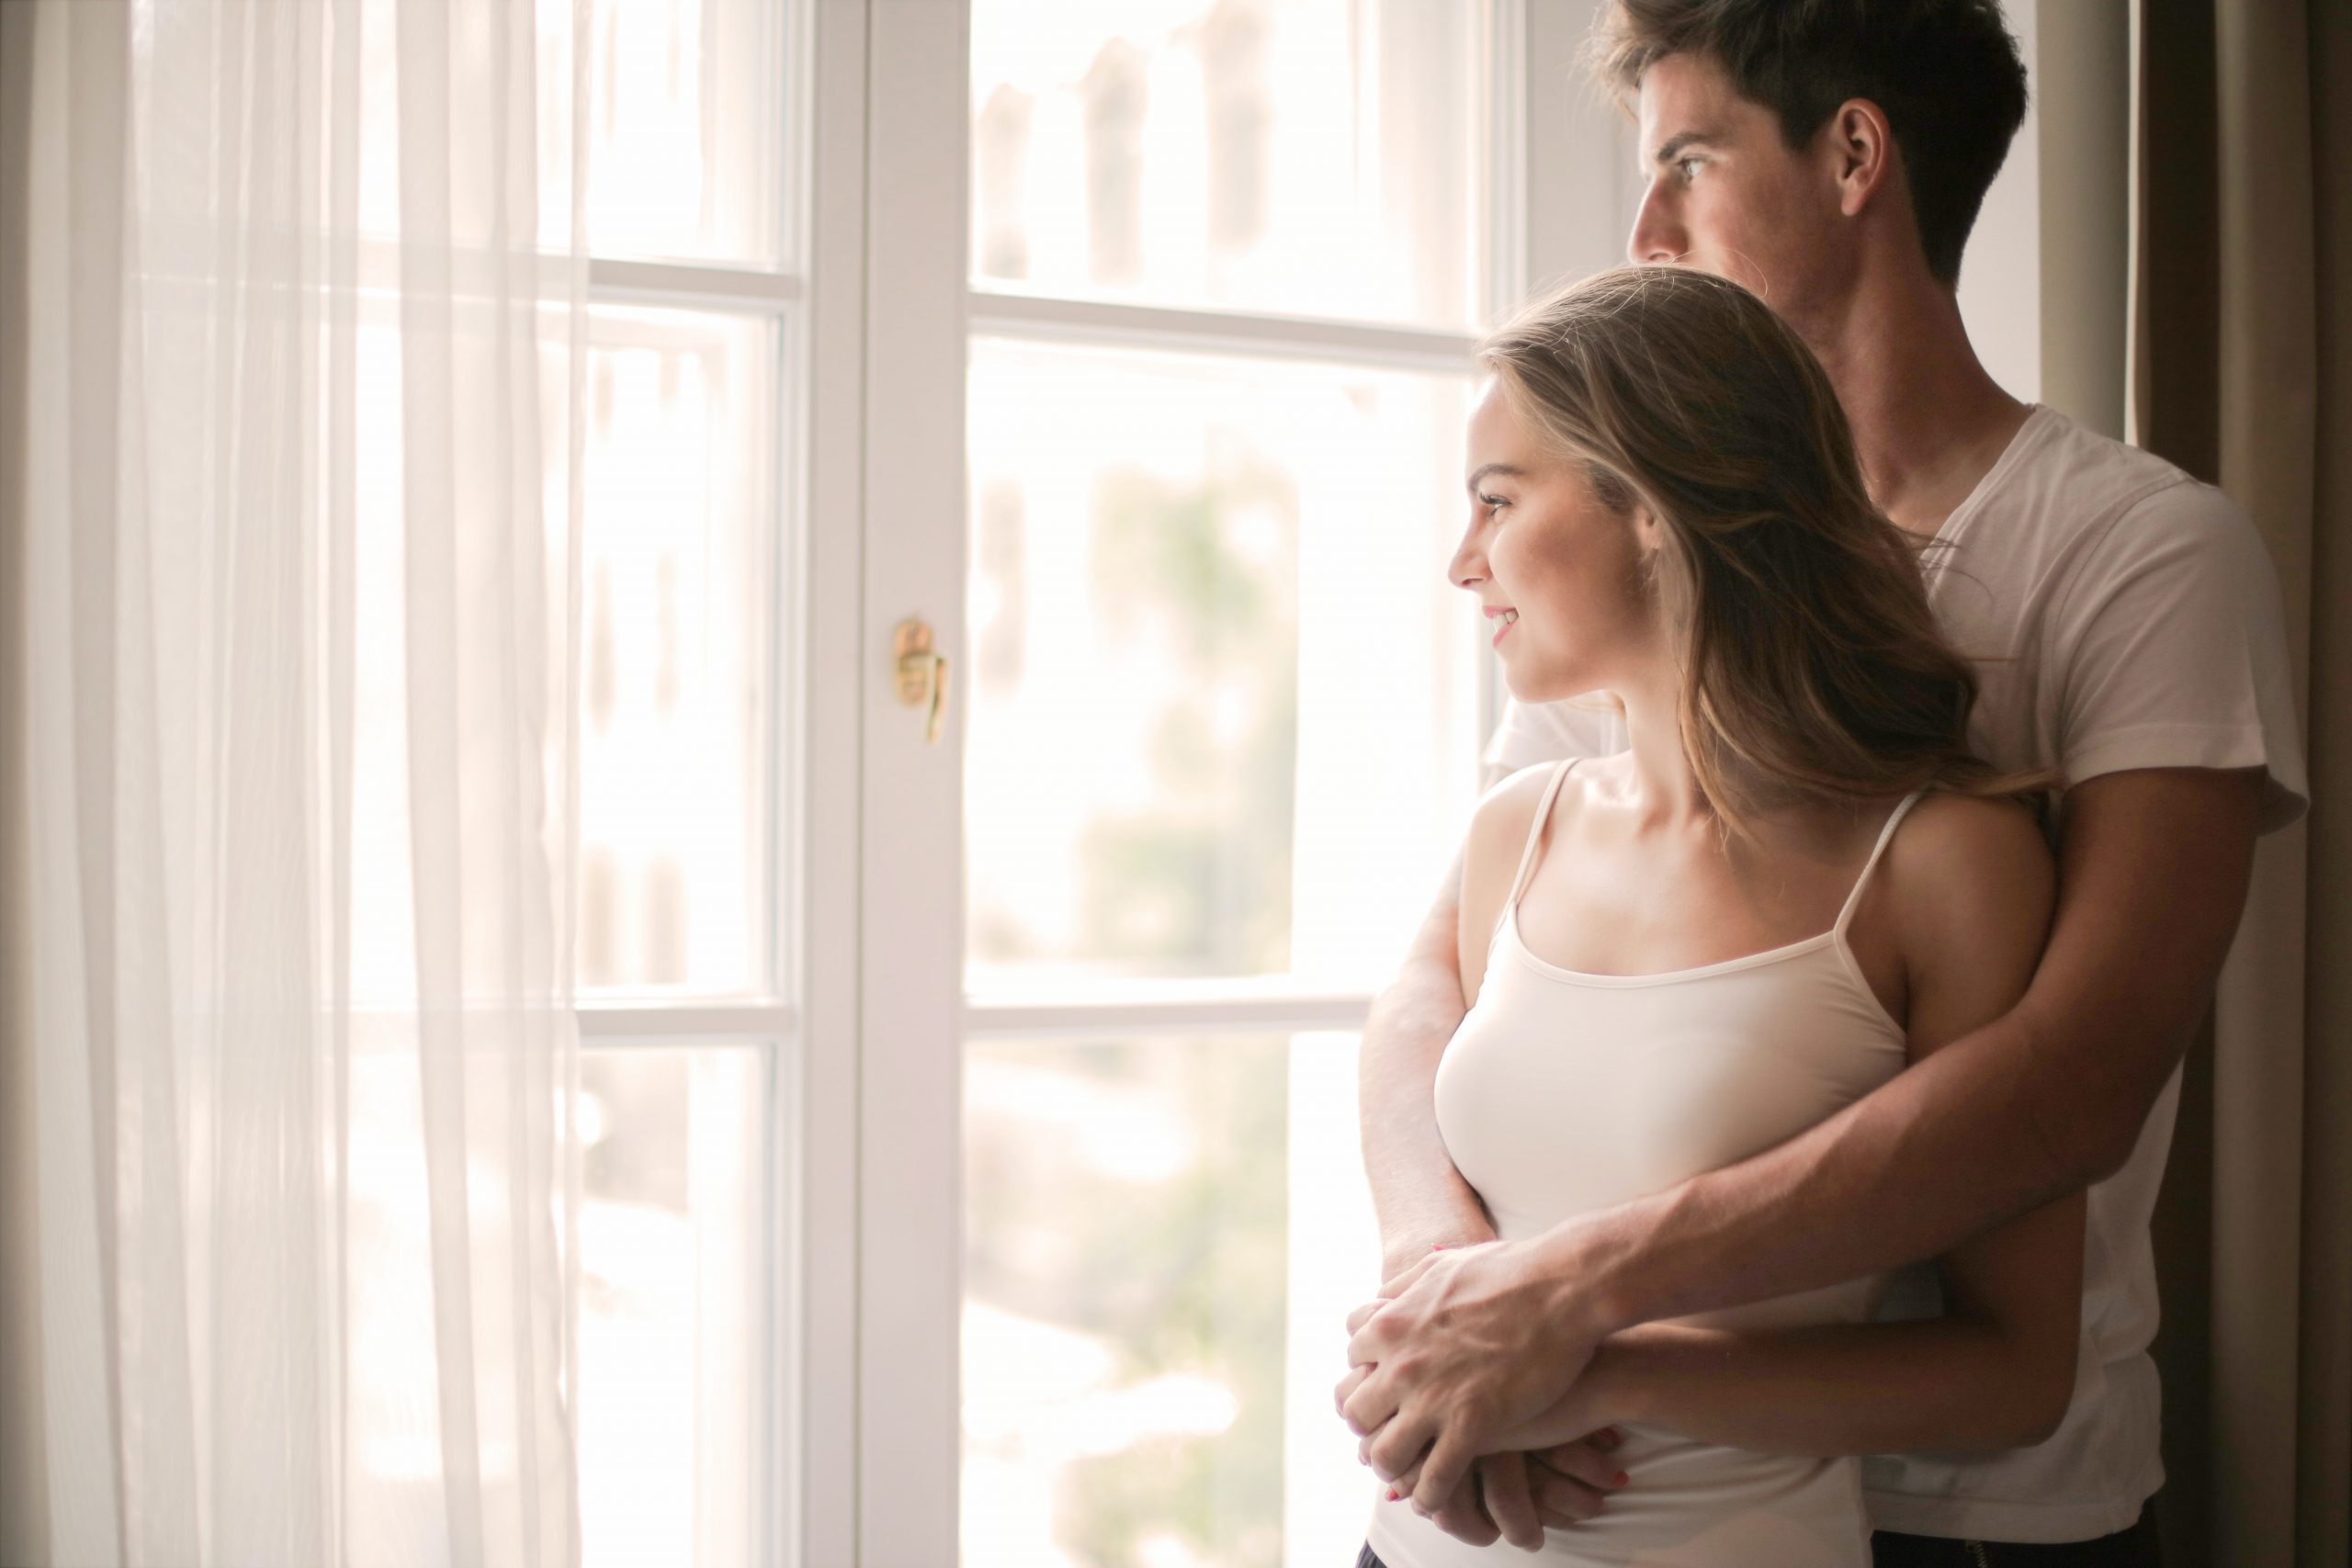 Young man holding young lady in front with arms around her, admiring the view through clean glass French doors